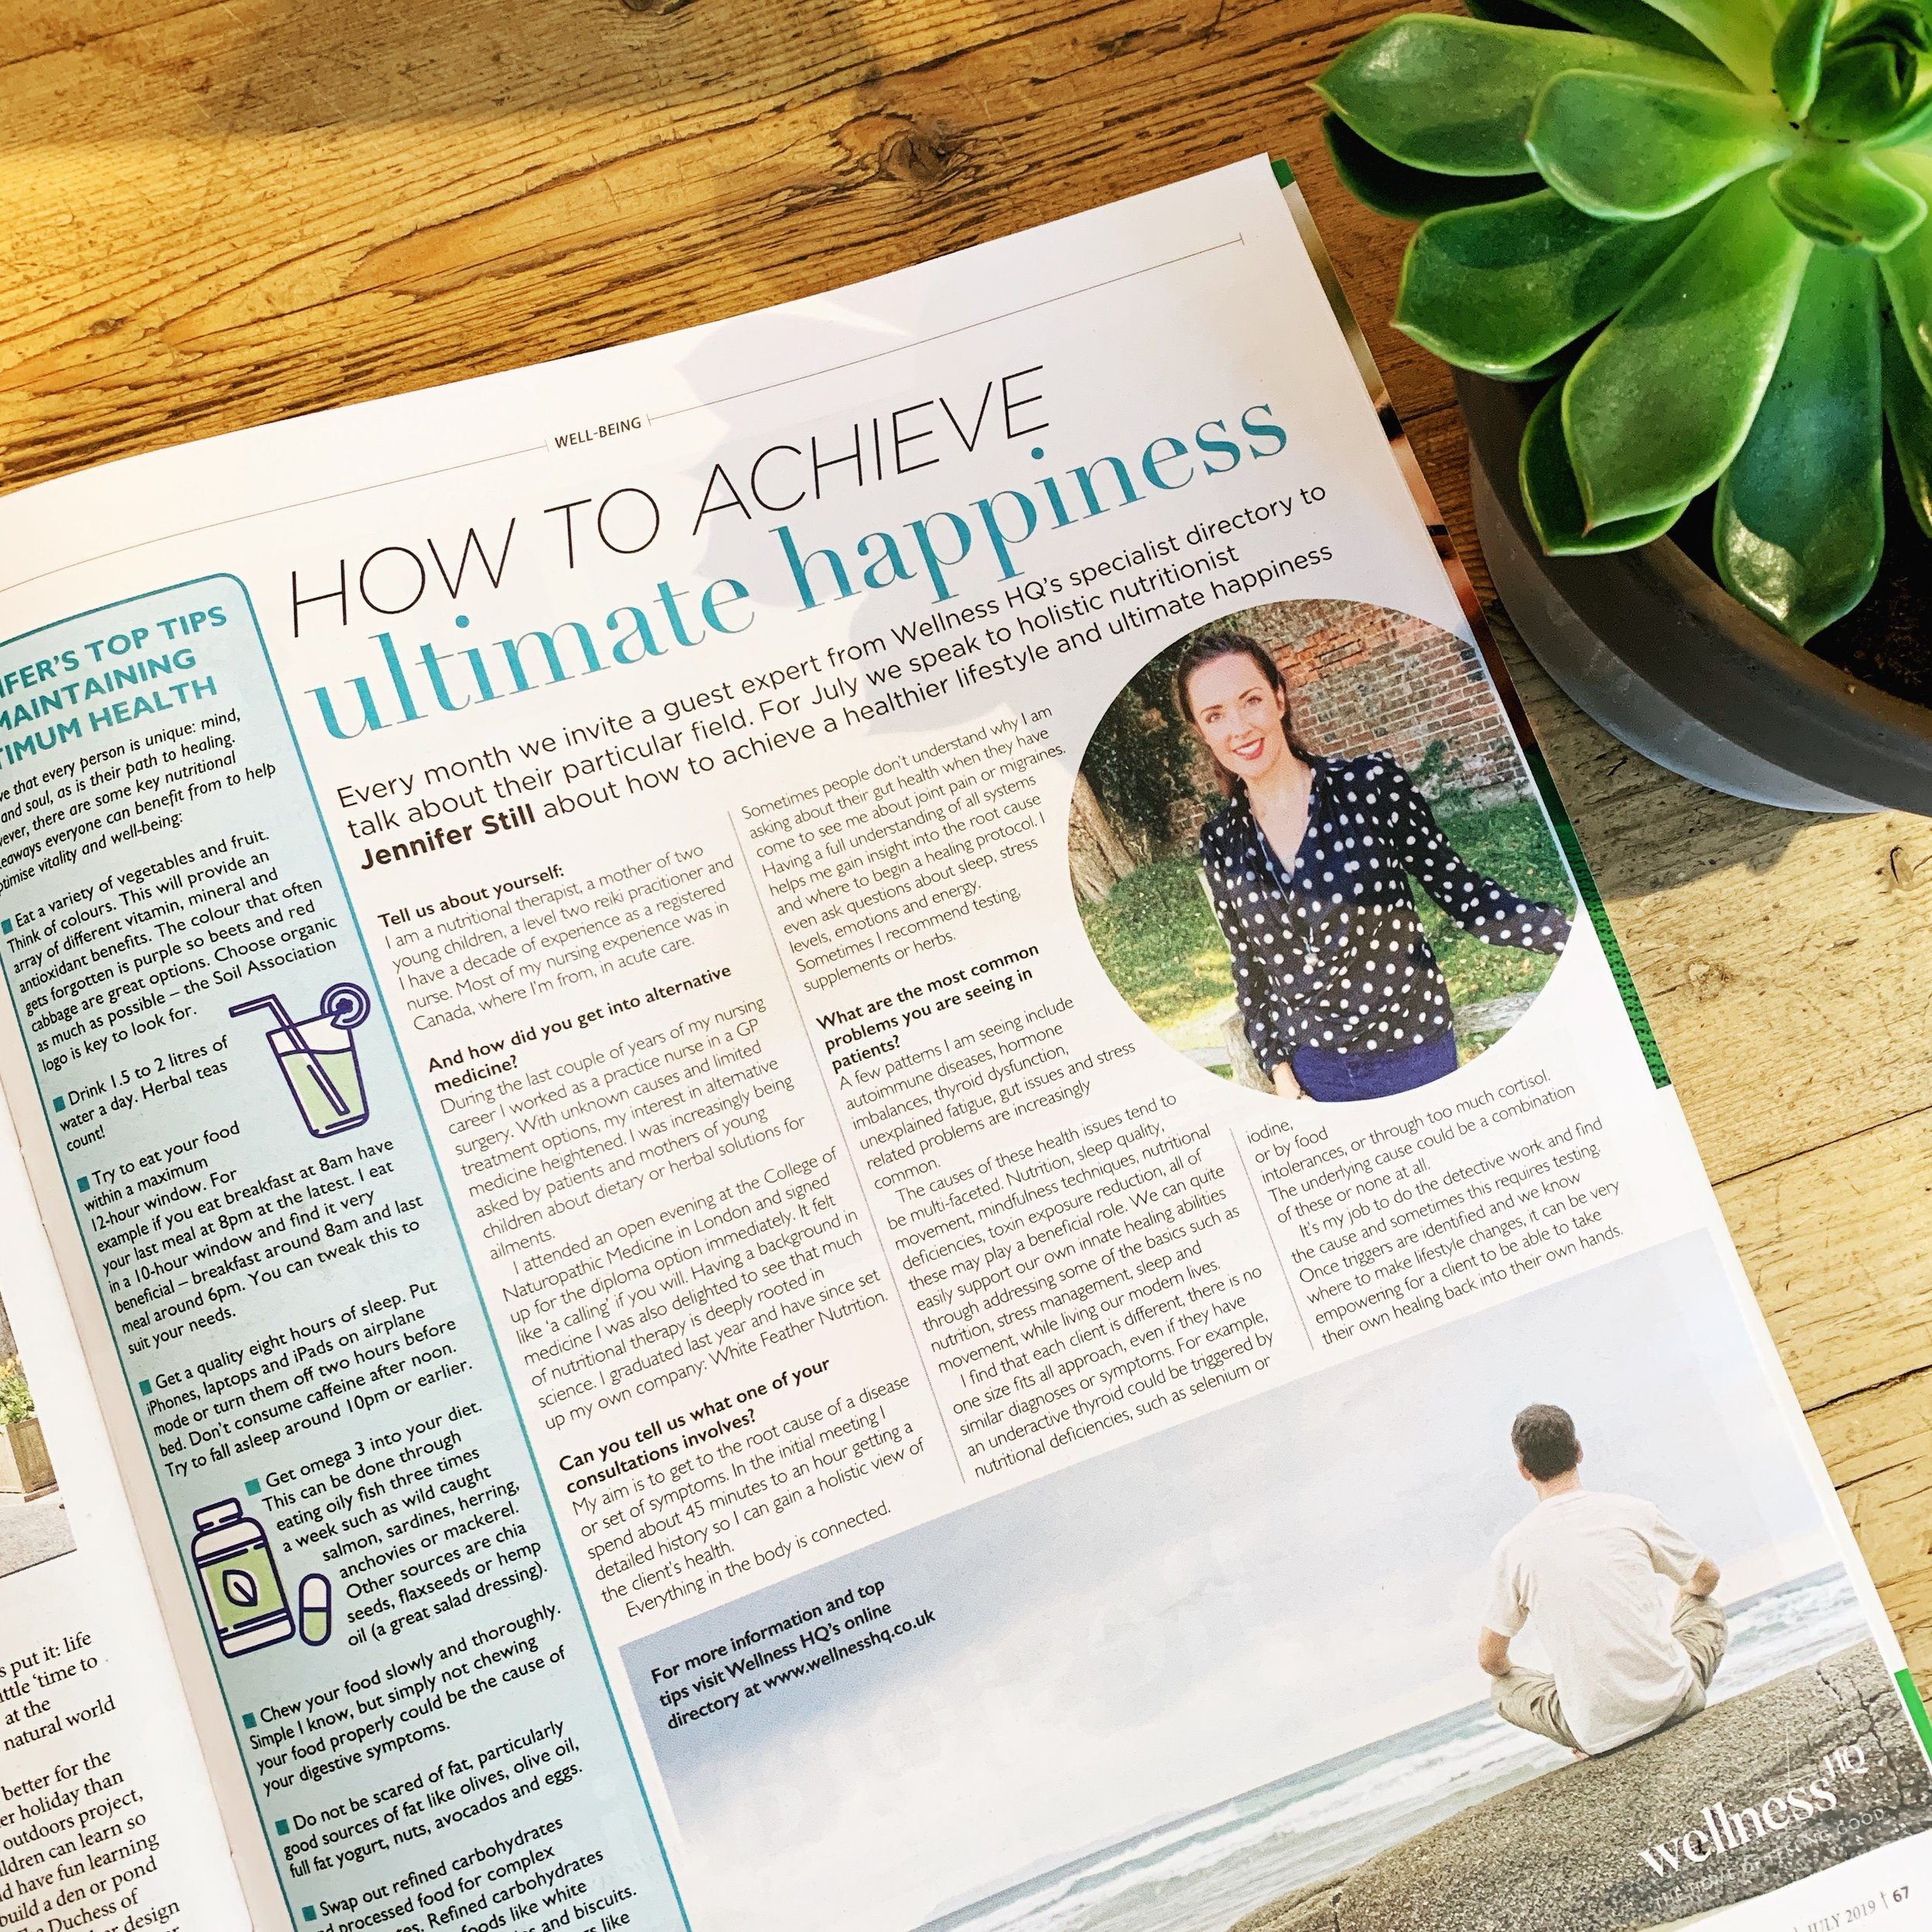 WELLNESS HQ IN SO MAGAZINE - This month we feature Jennifer Still, of White Feather Nutrition